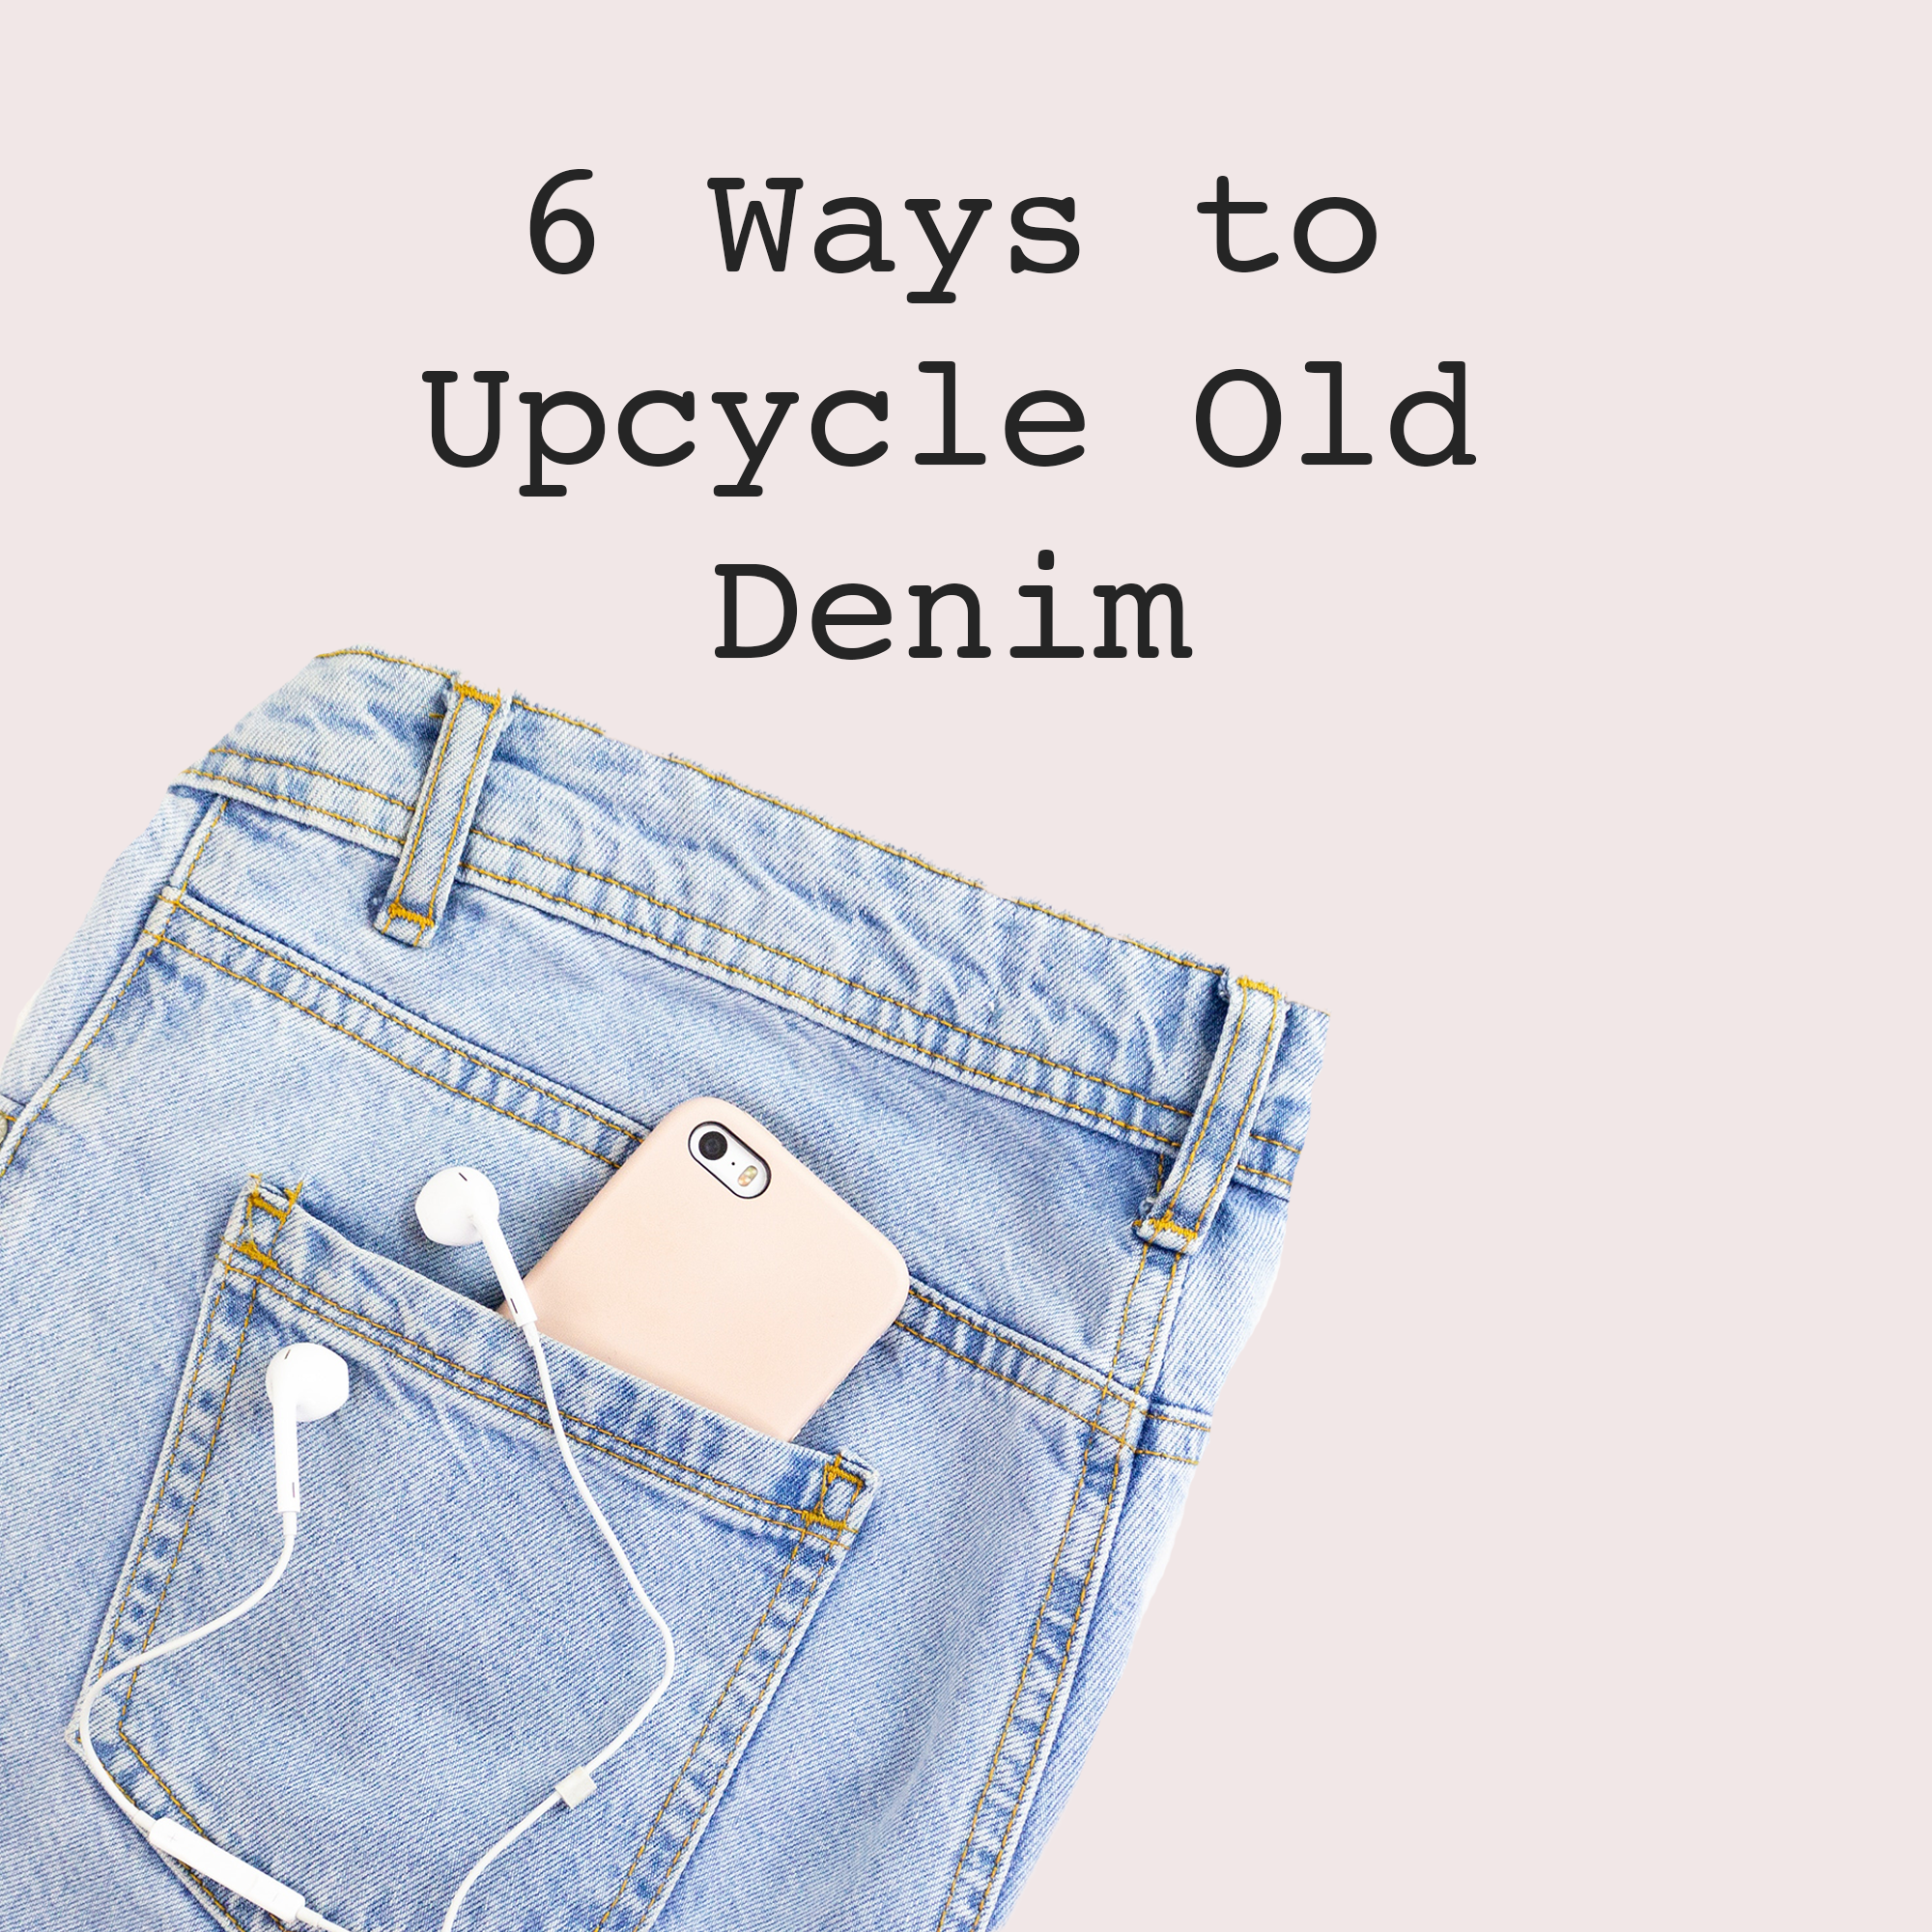 6-ways-to-upcycle-old-denim.png